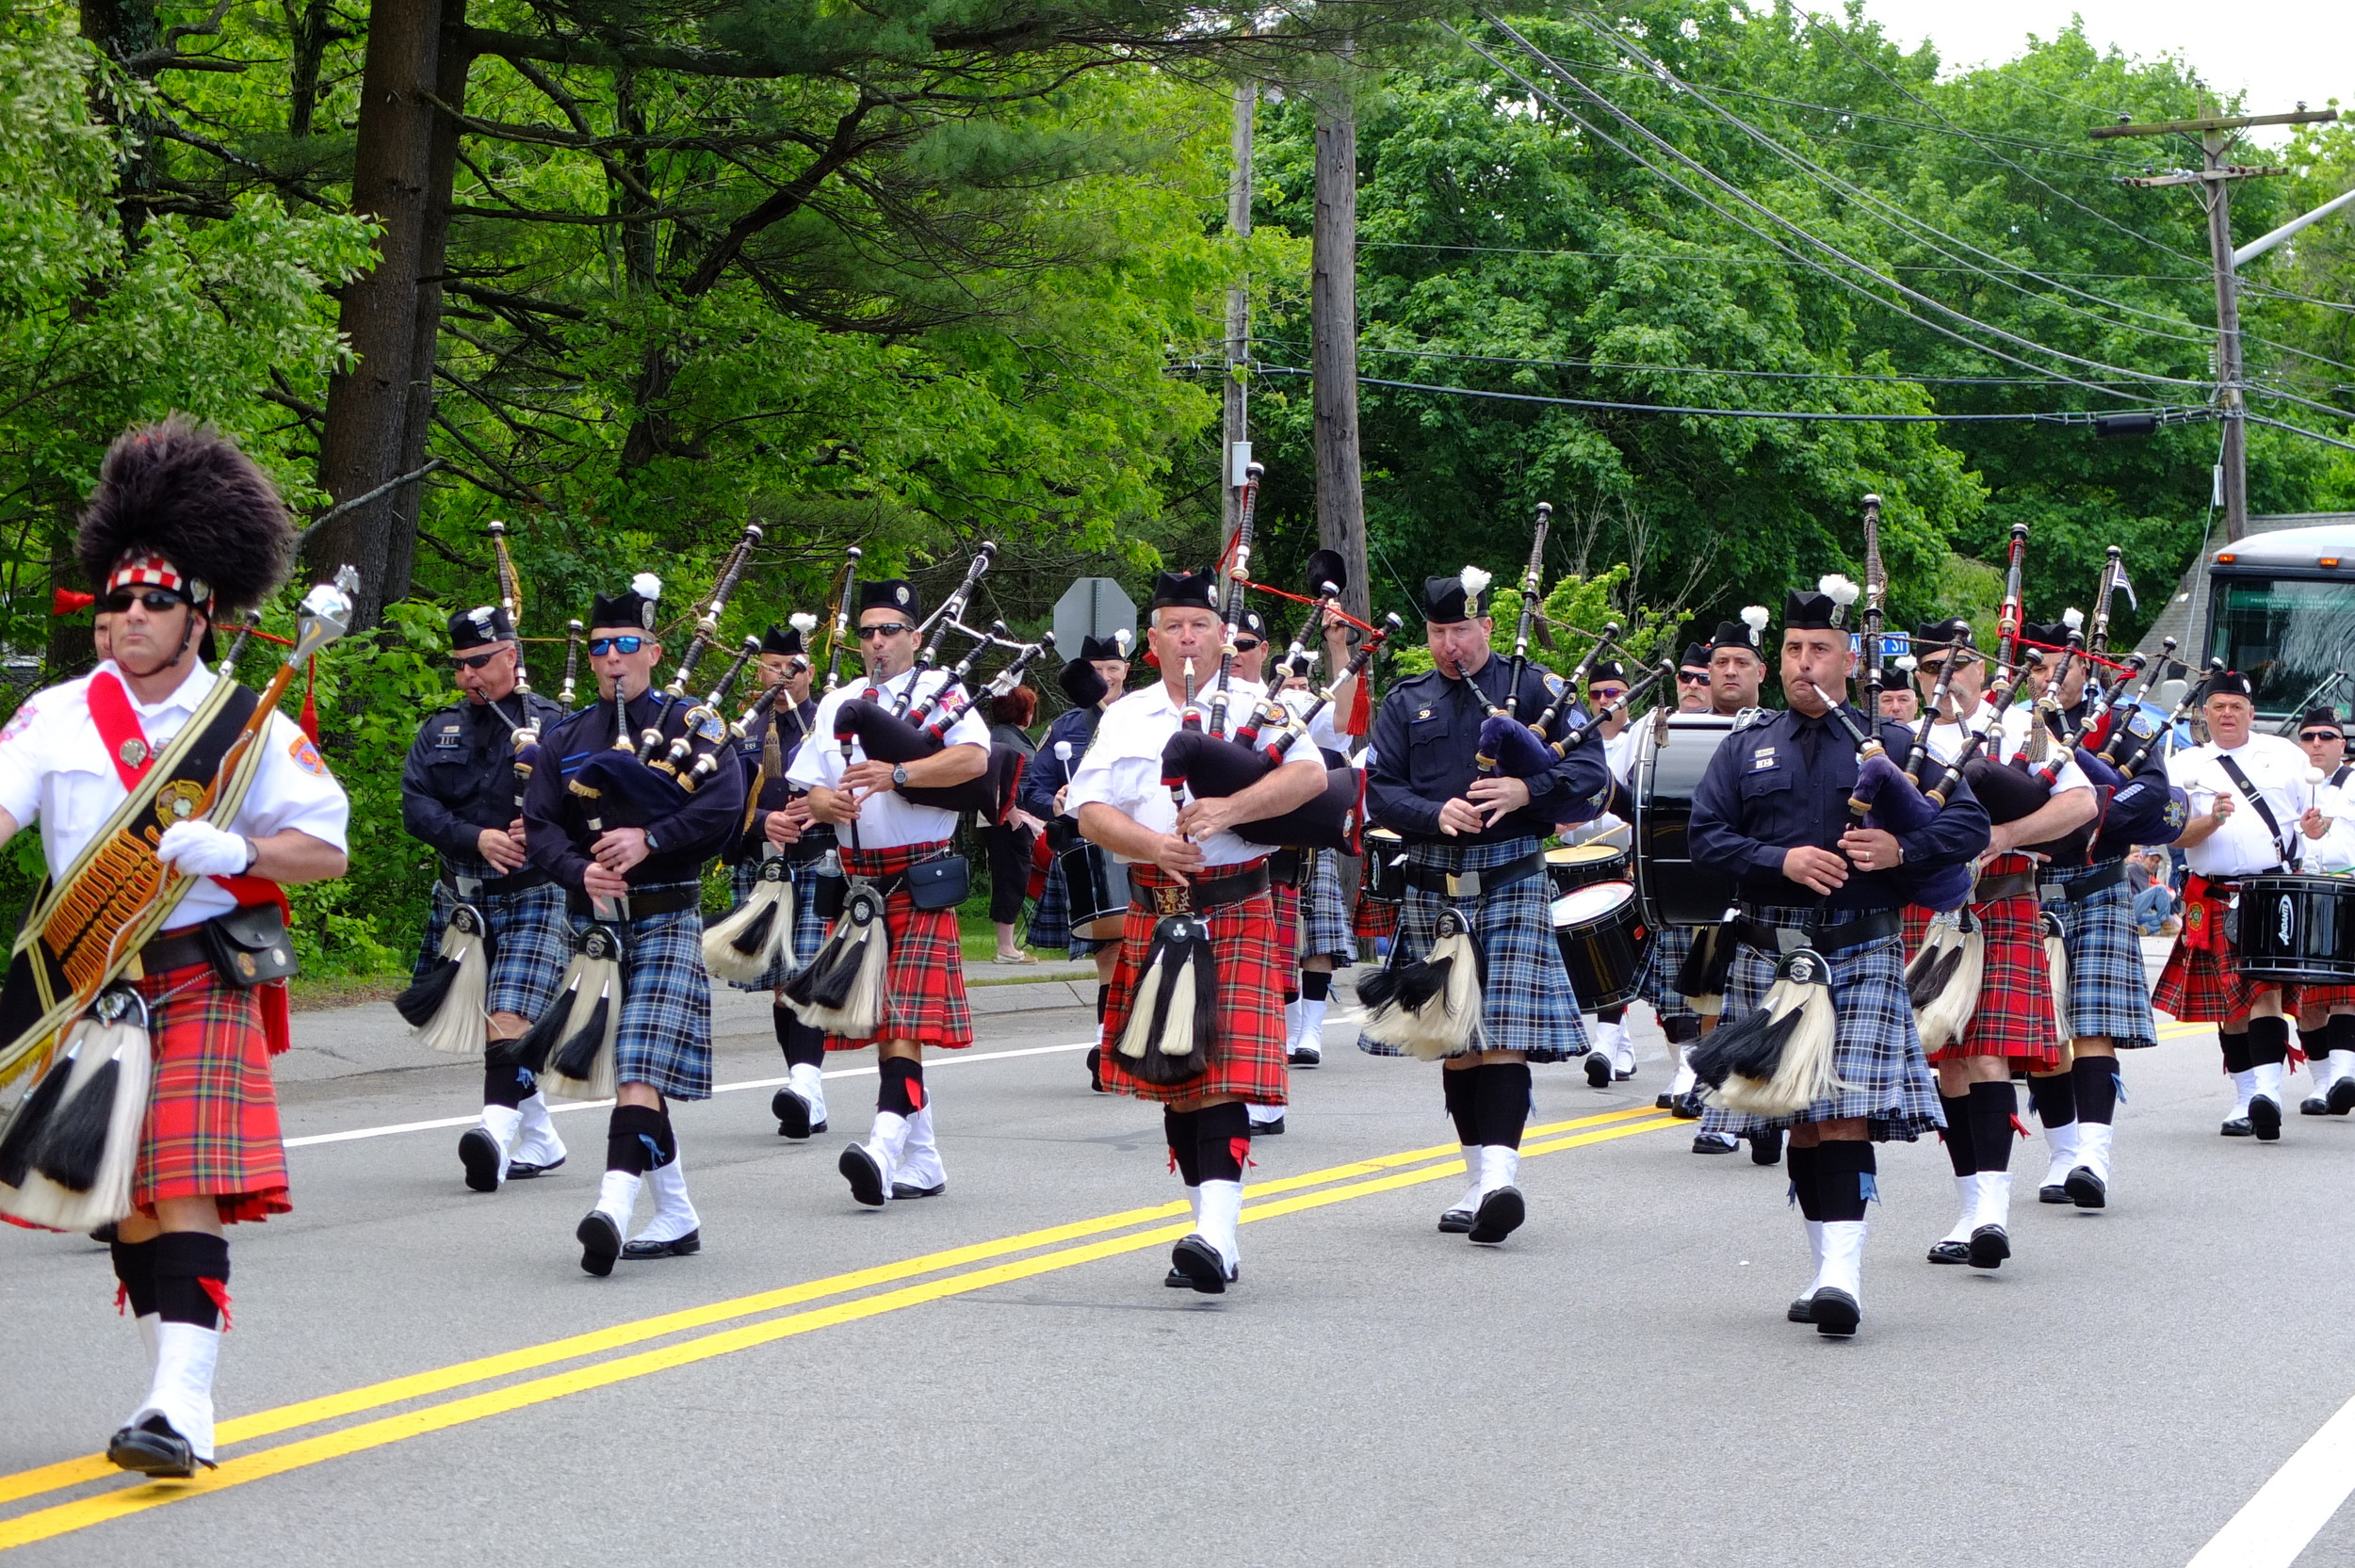 Police and Fire Department Bagpipers march in the parade.